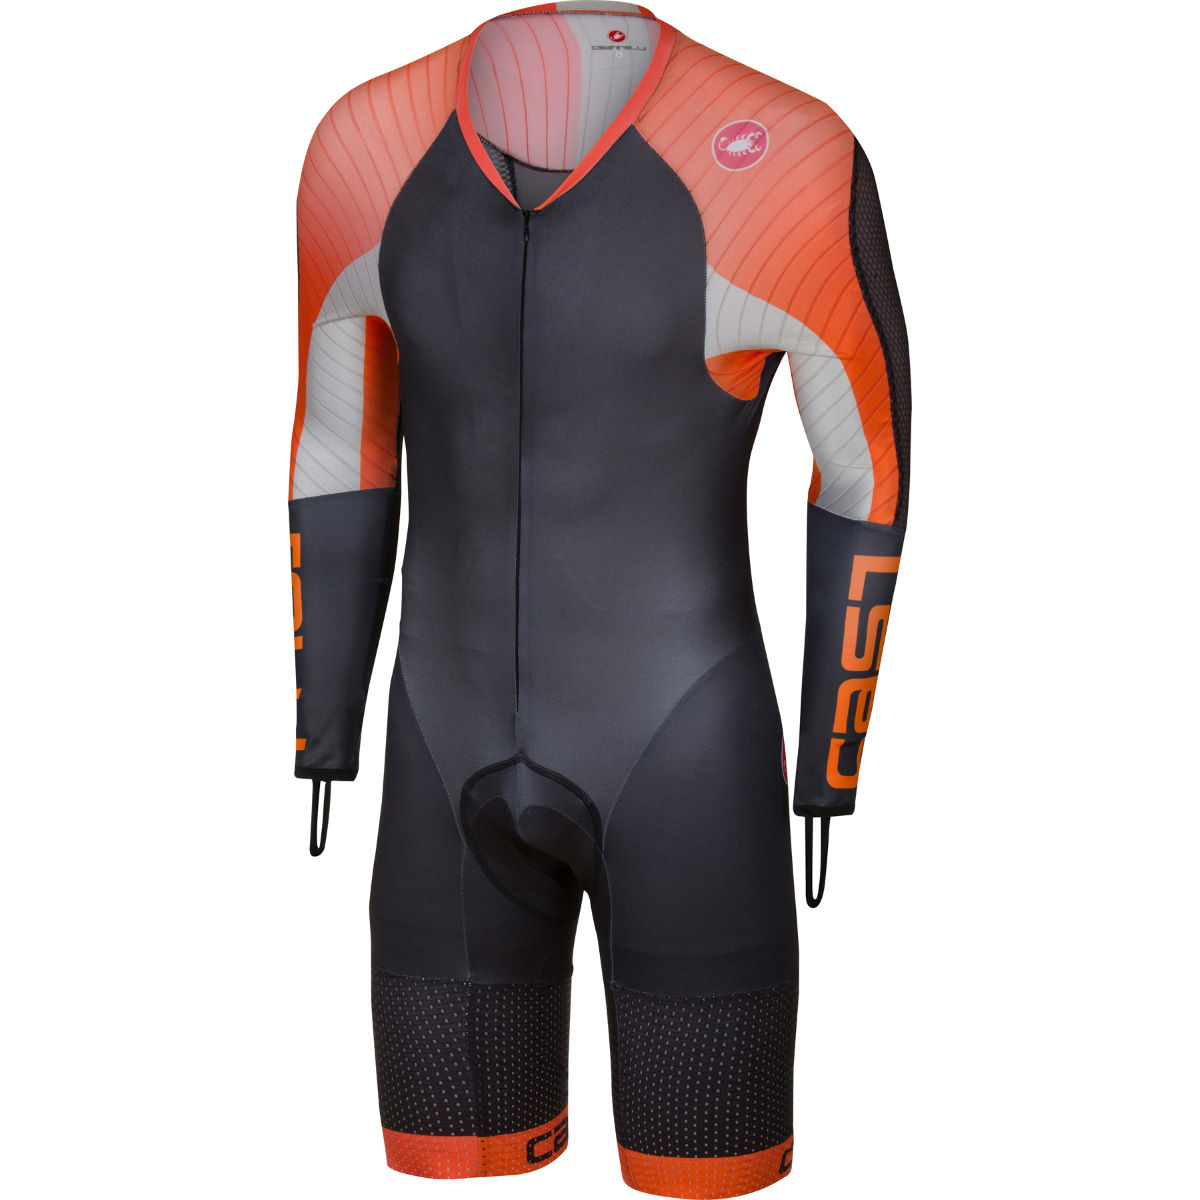 Combinaison Castelli Body Paint 3.3 Speed - S Noir/Orange